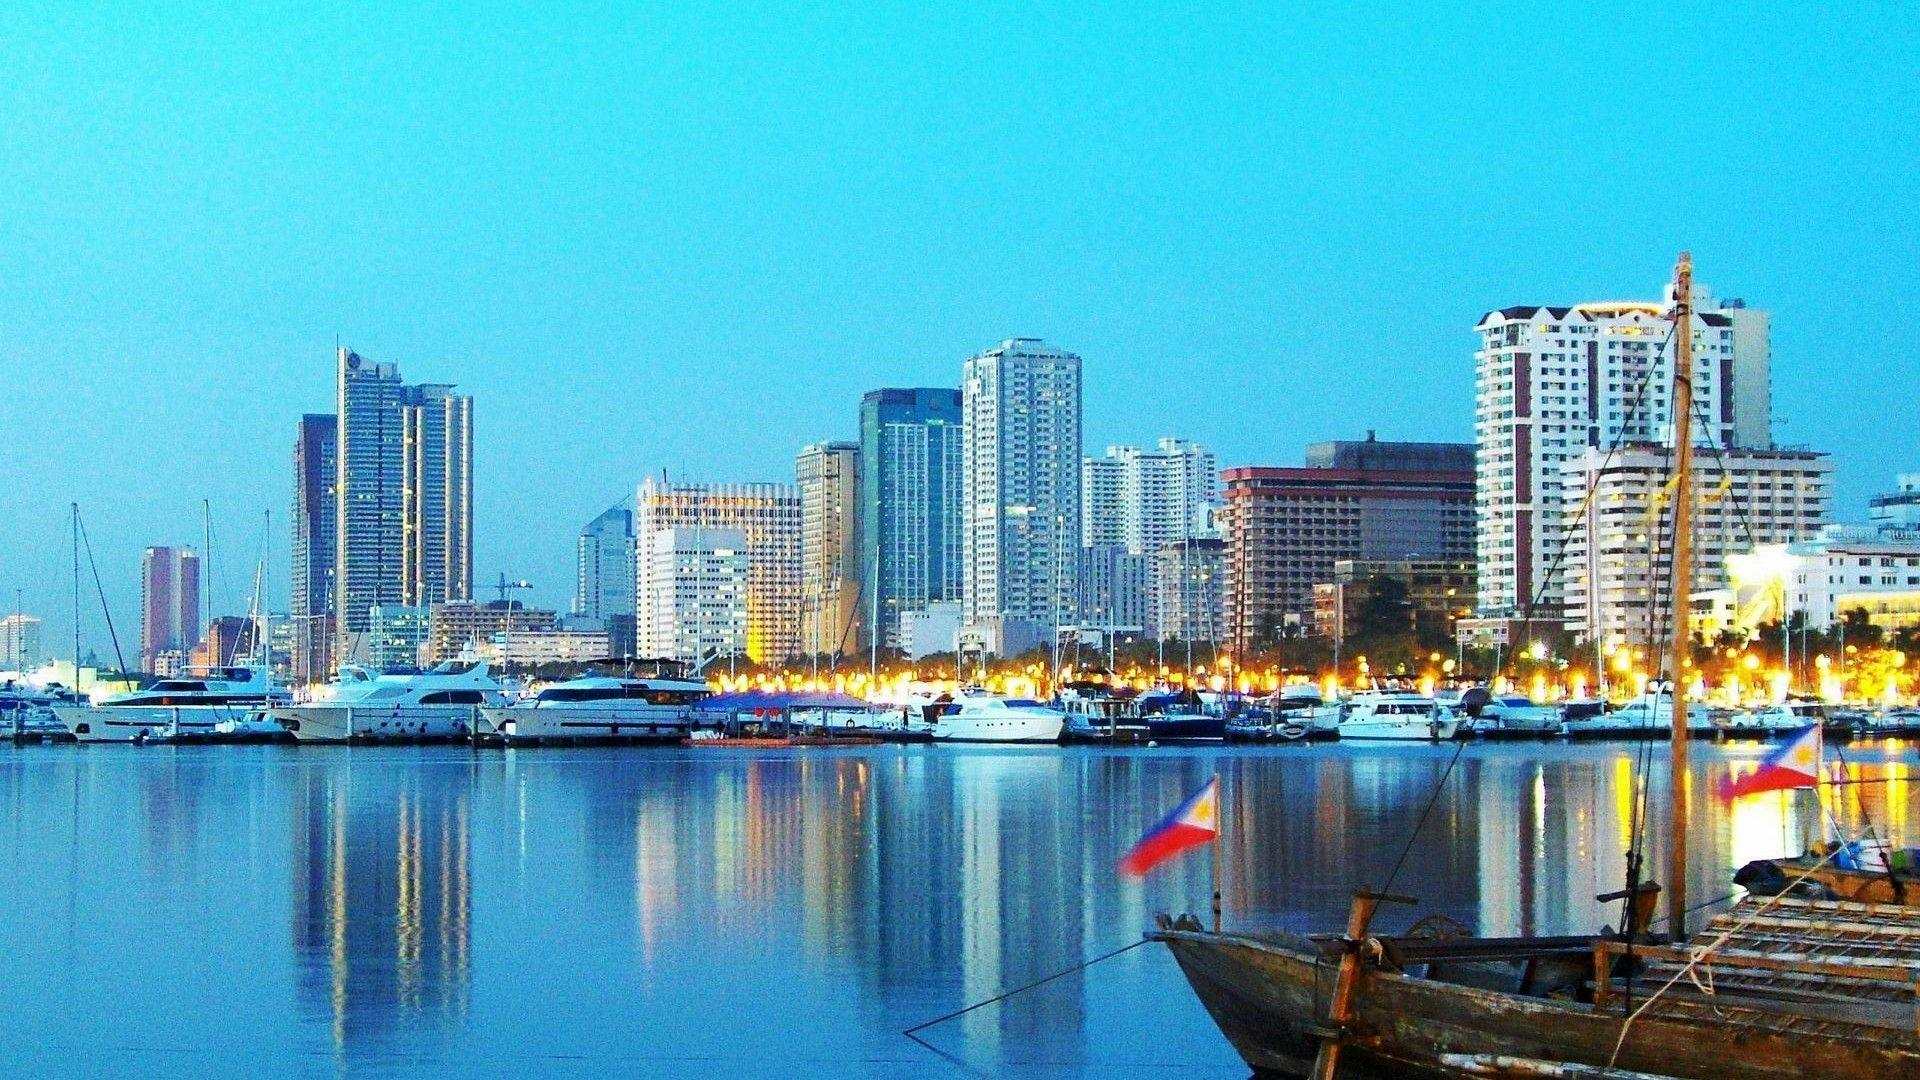 Manila Desktop Wallpapers, Manila Wallpapers | 45 HD Wallpapers ...